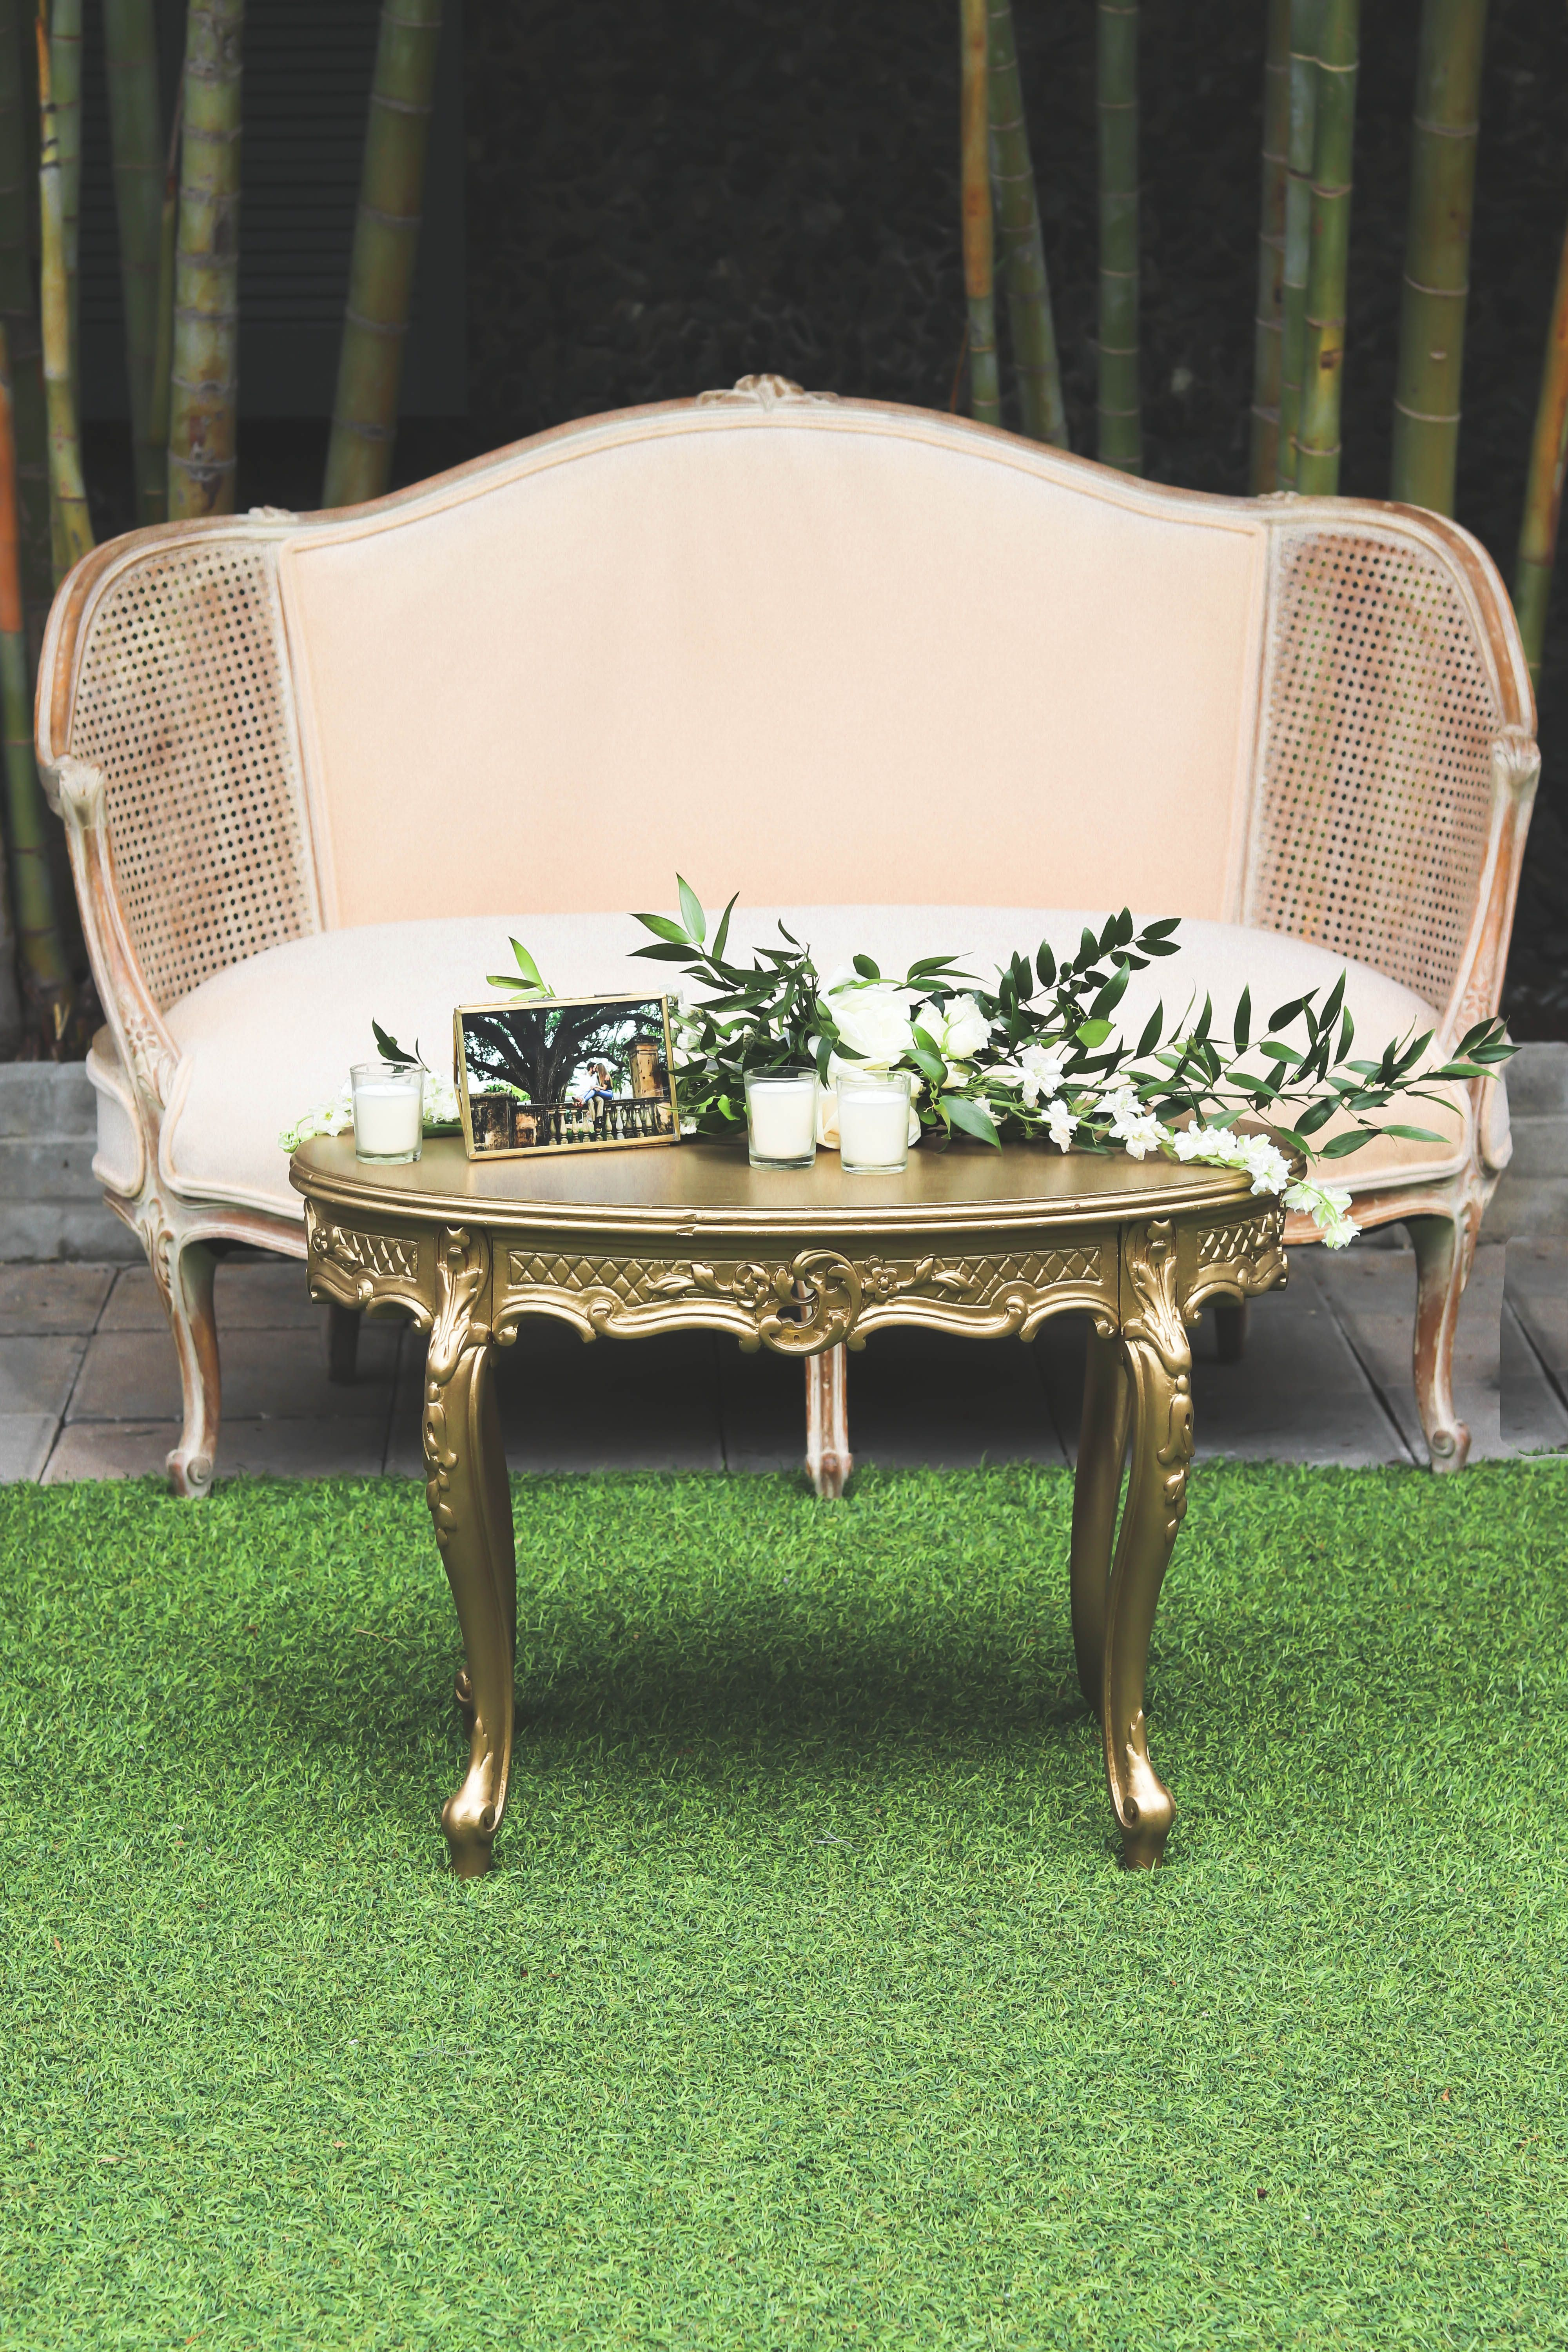 Our Mindy Coffee Table is perfect for an elegant vintage